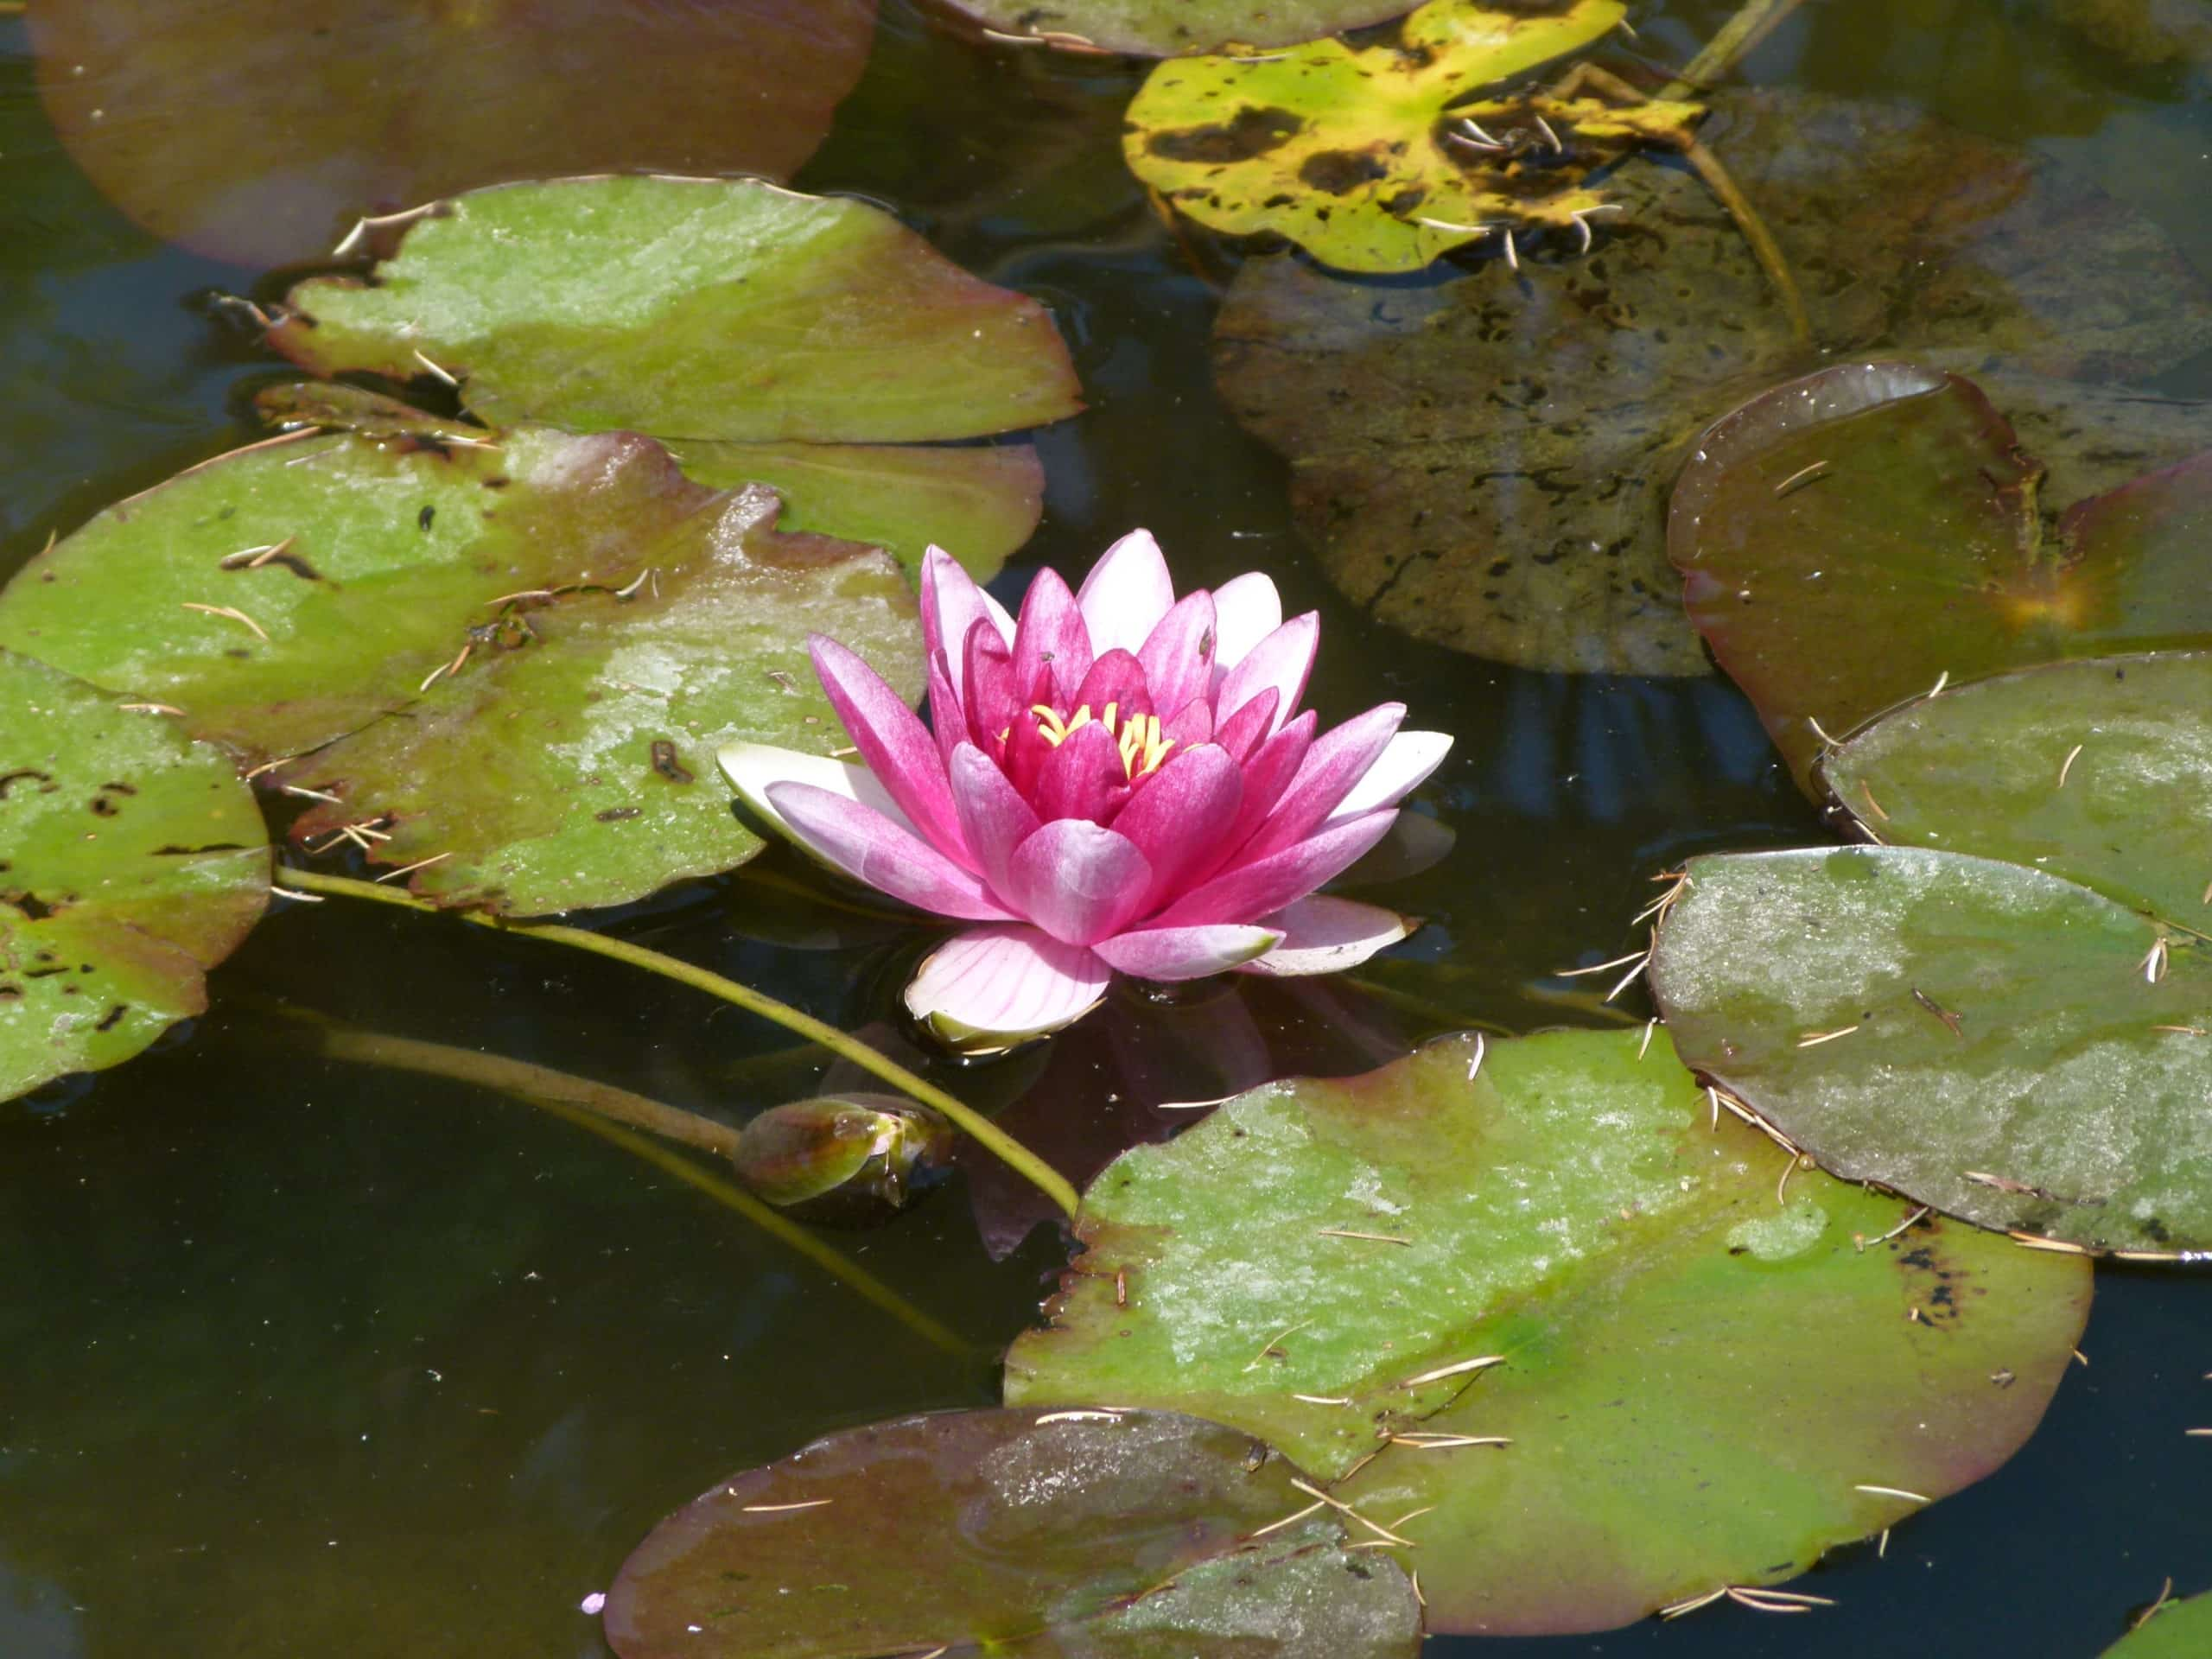 Nymphea. (Water Lily).